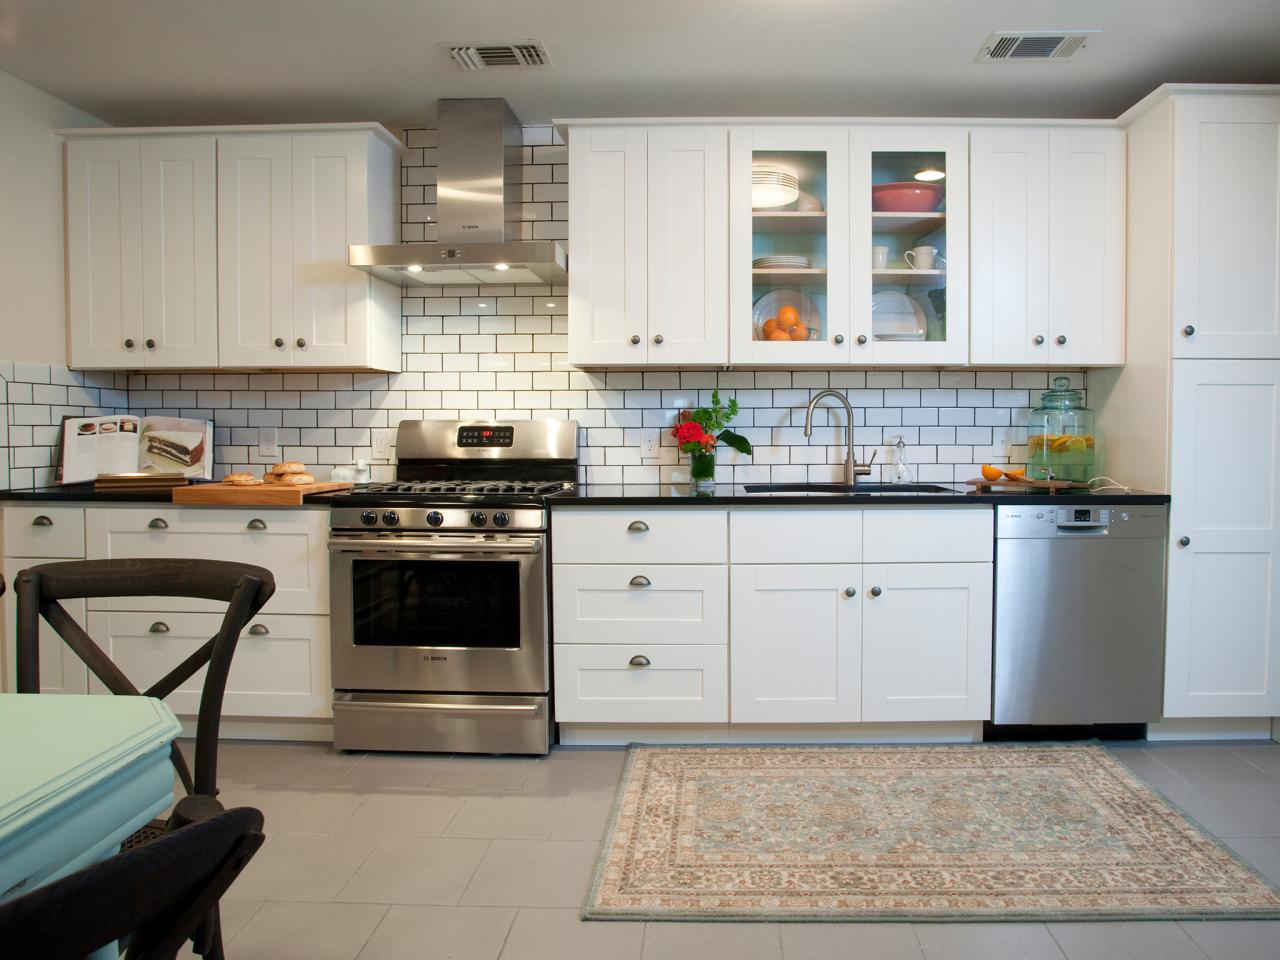 Amusing Design Of The Blue Tile Backsplash Ideas With White Cabinets And White Refrigerator Ideas With Grey Floor Ideas